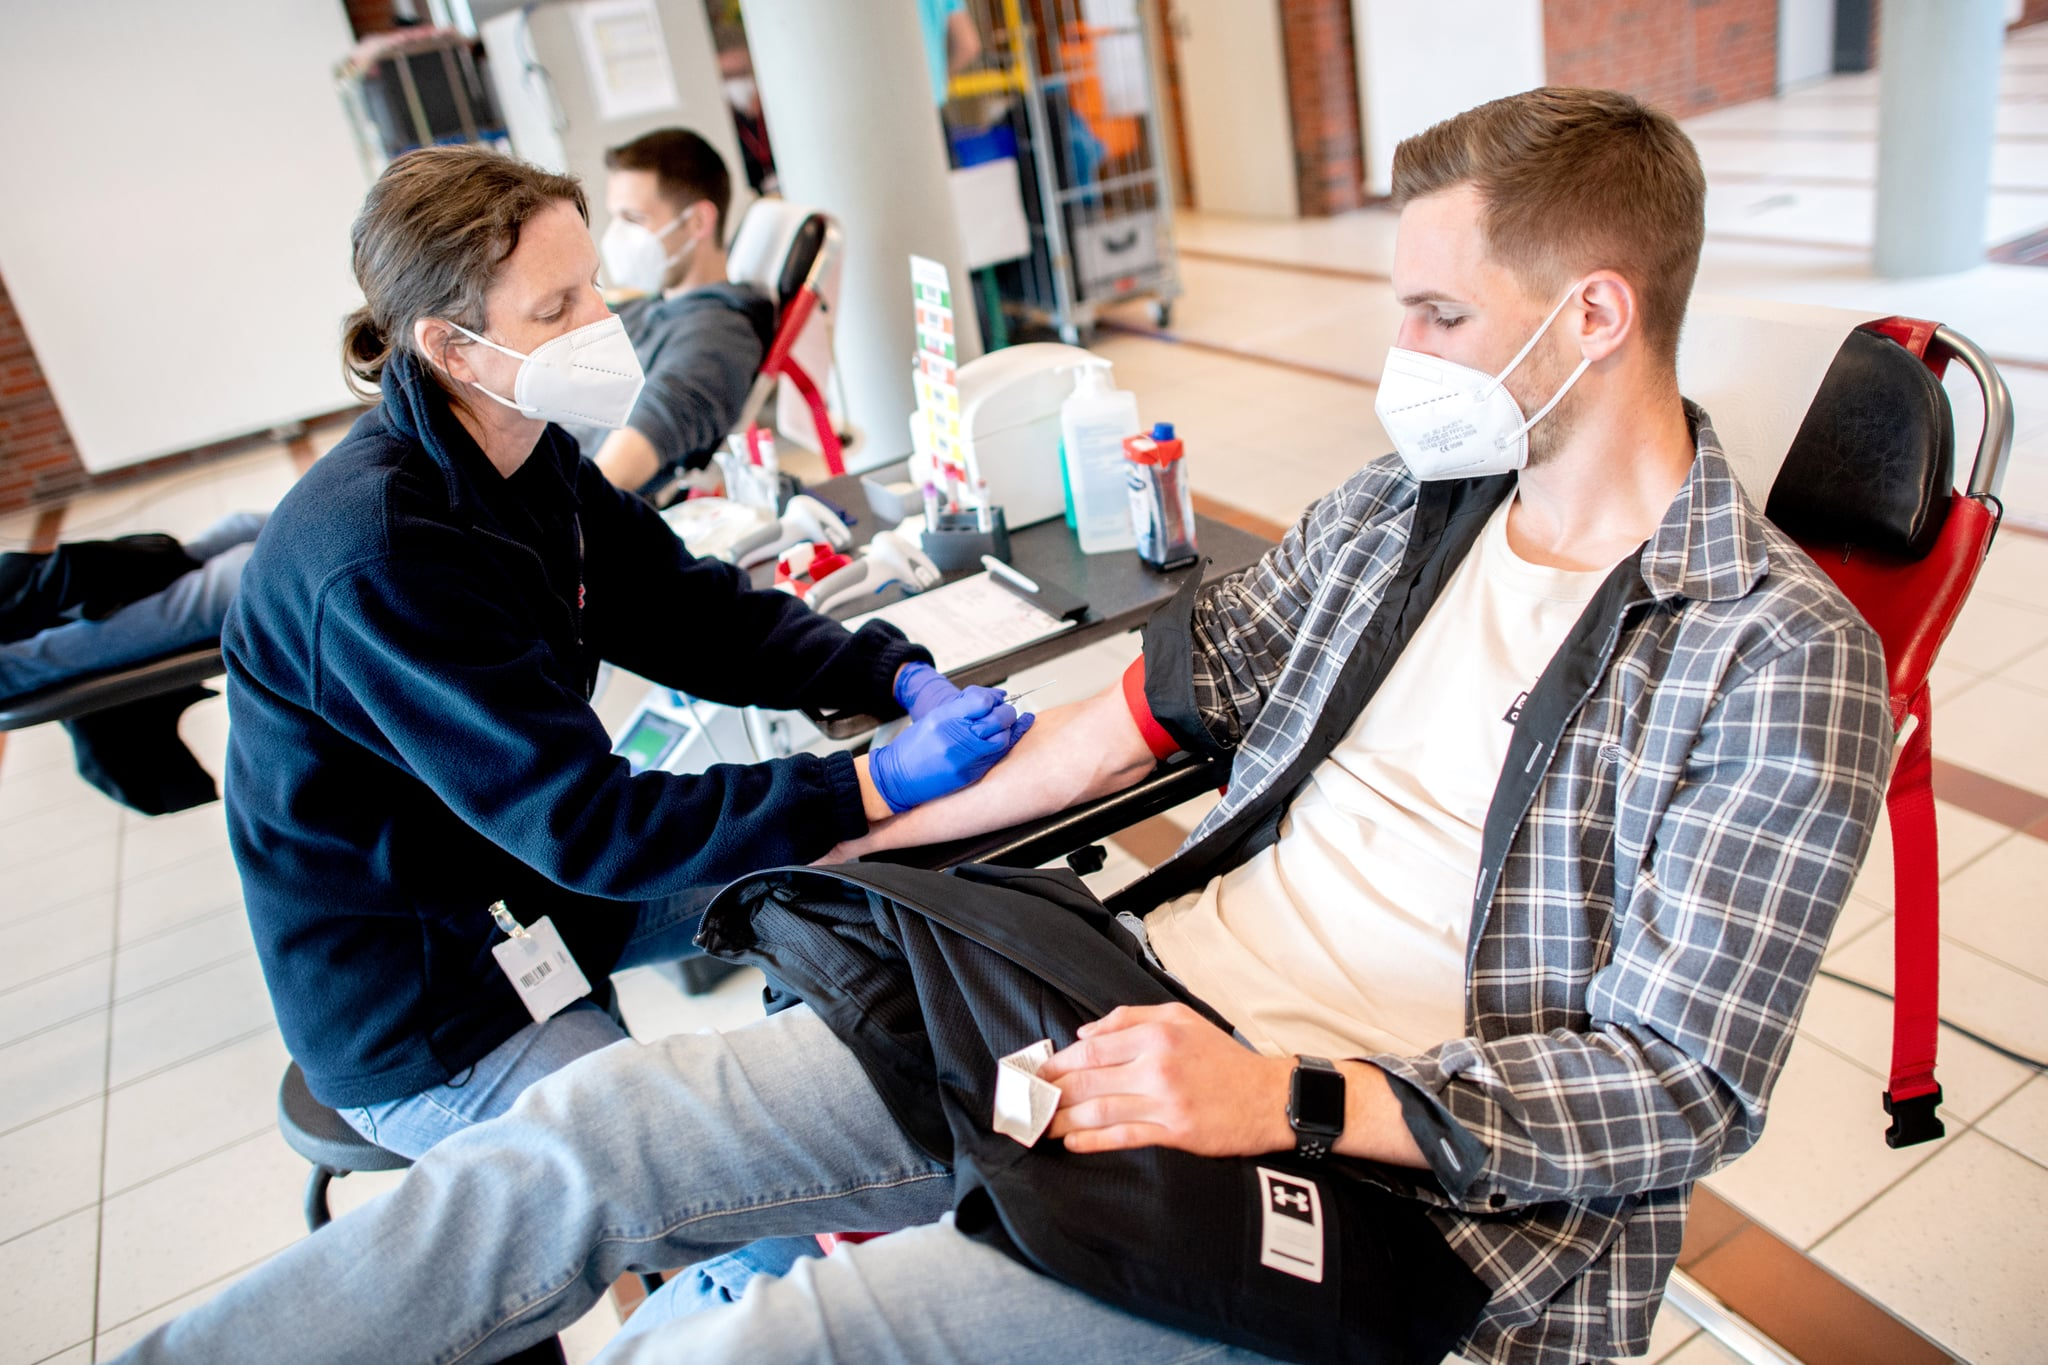 PRODUCTION - 06 May 2021, Lower Saxony, Emstek: Katrin Kruse (l), employee at the NSTOB blood donation service of the German Red Cross (DRK), takes blood from donor Sebastian Haske. In 2021, the German Red Cross will celebrate a special anniversary - it will be 100 years old. Photo: Hauke-Christian Dittrich/dpa (Photo by Hauke-Christian Dittrich/picture alliance via Getty Images)